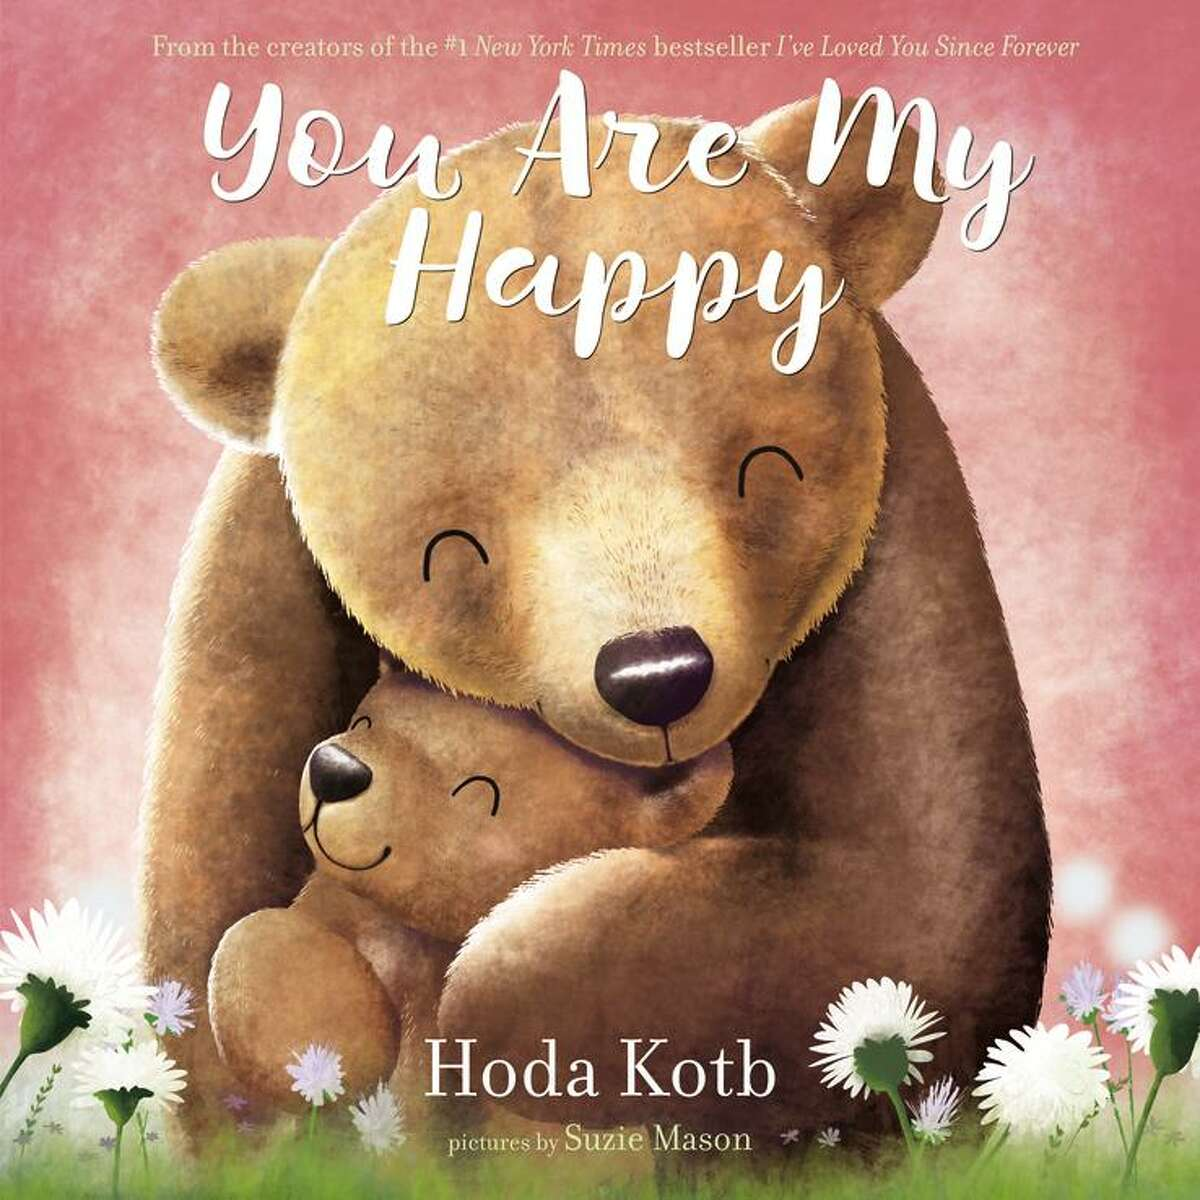 """CHILDREN'S BOOKS: """"You Are My Happy"""" By Hoda Kotb and pictures by Suzie Mazon, HarperCollins, $18.99, Ages 4-8"""